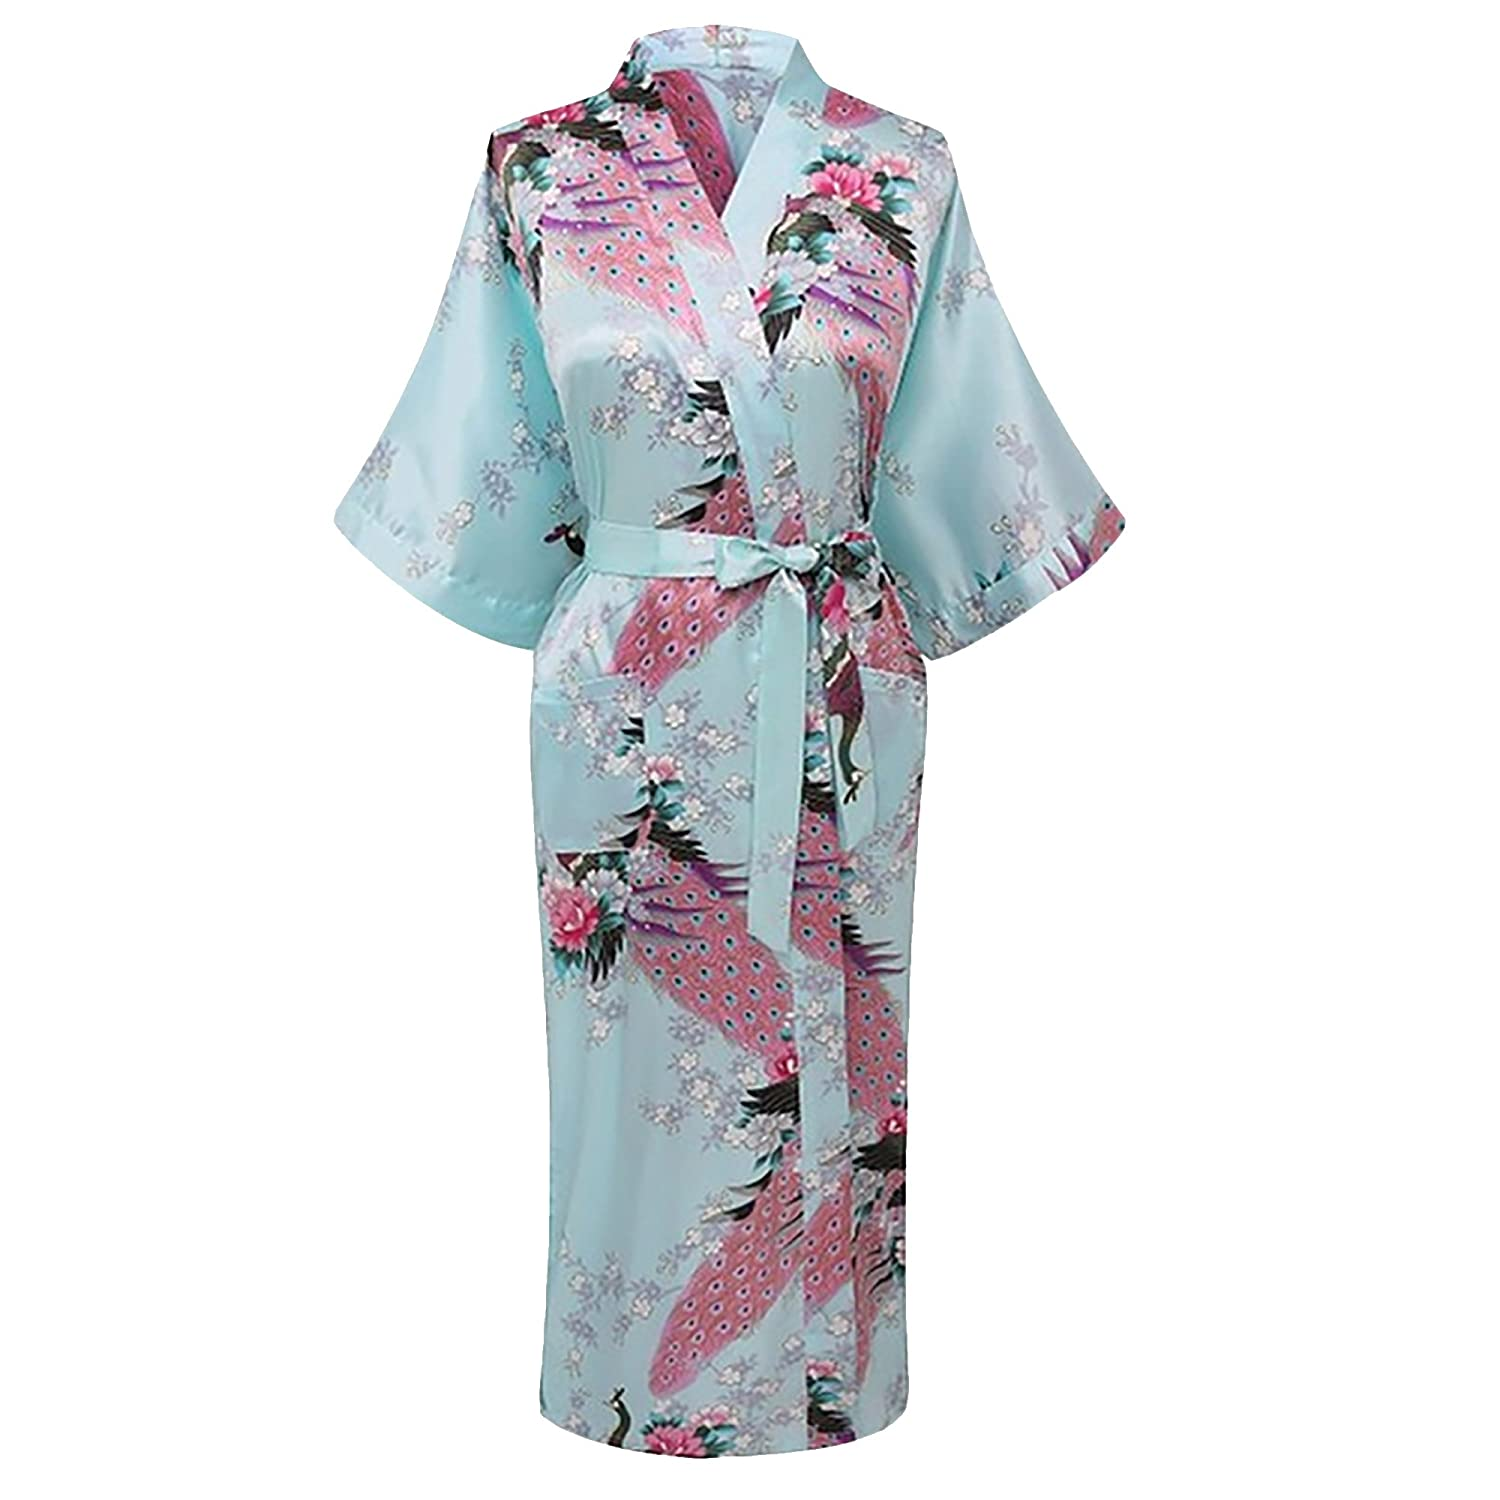 Gifts Are Blue Elegant Long Floral Silk Kimono Womens Robe, Small to 3XL